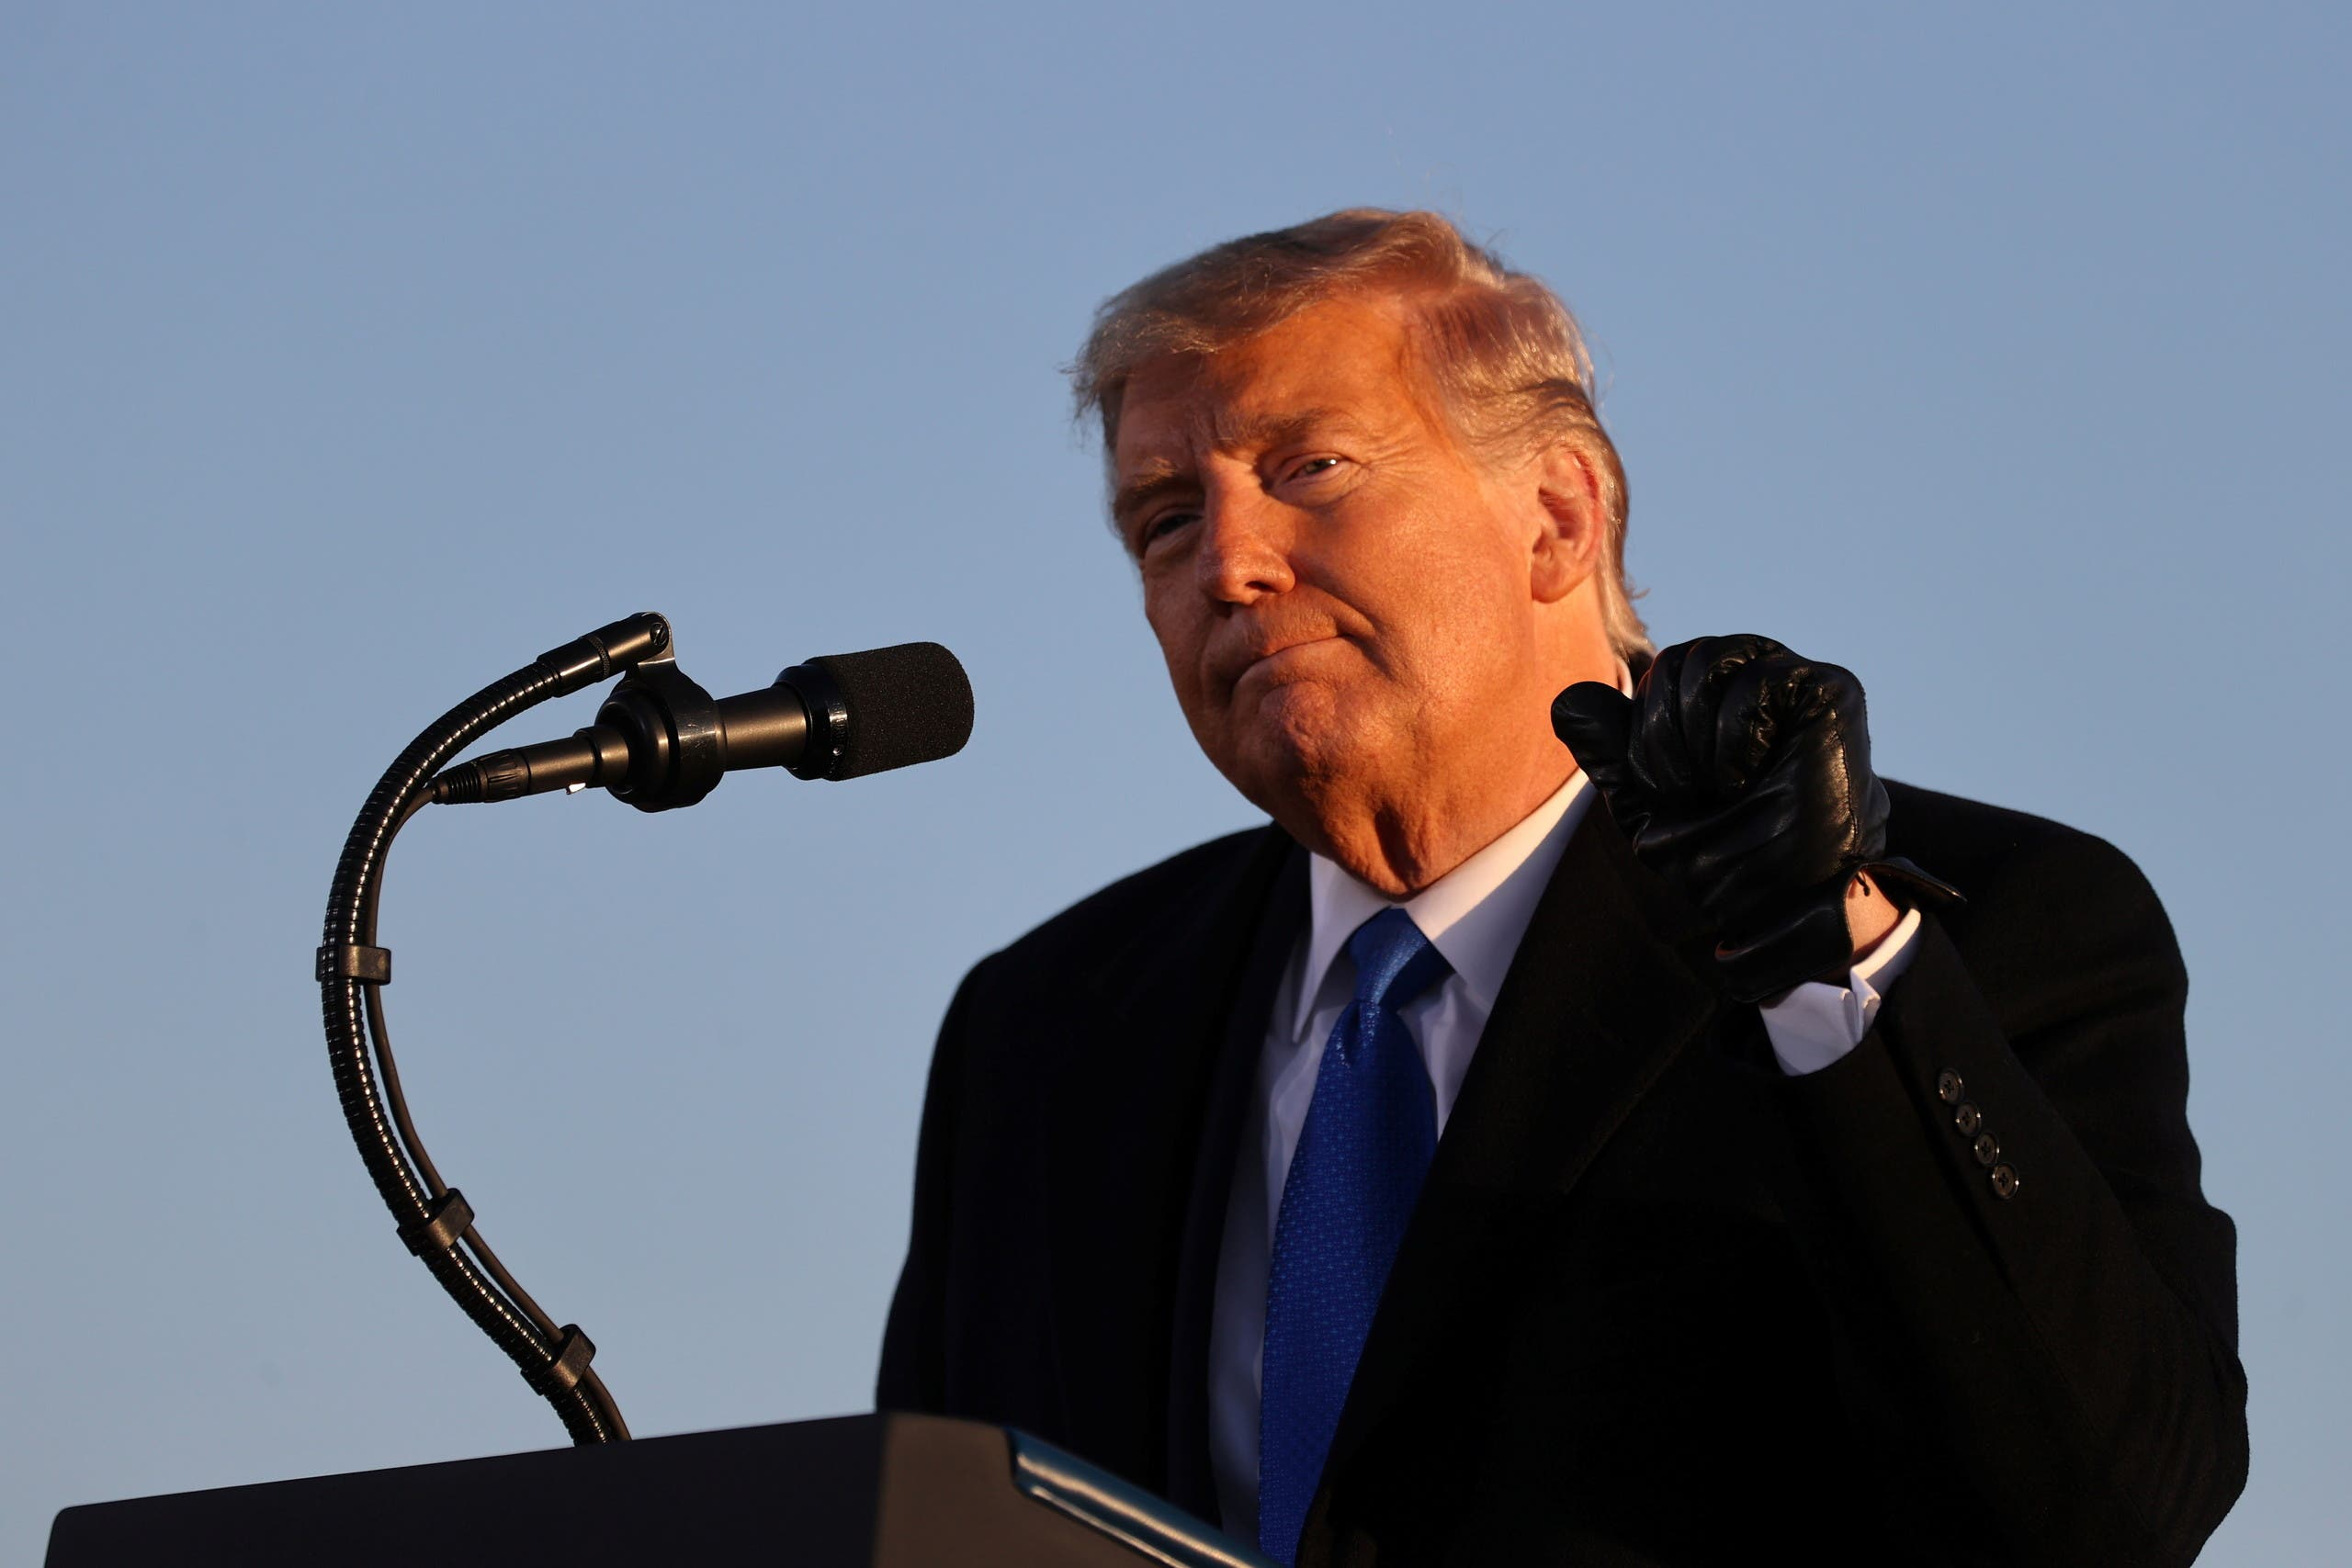 US President Donald Trump speaks during a campaign event in West Salem, Wisconsin, Oct. 27, 2020. (Reuters)